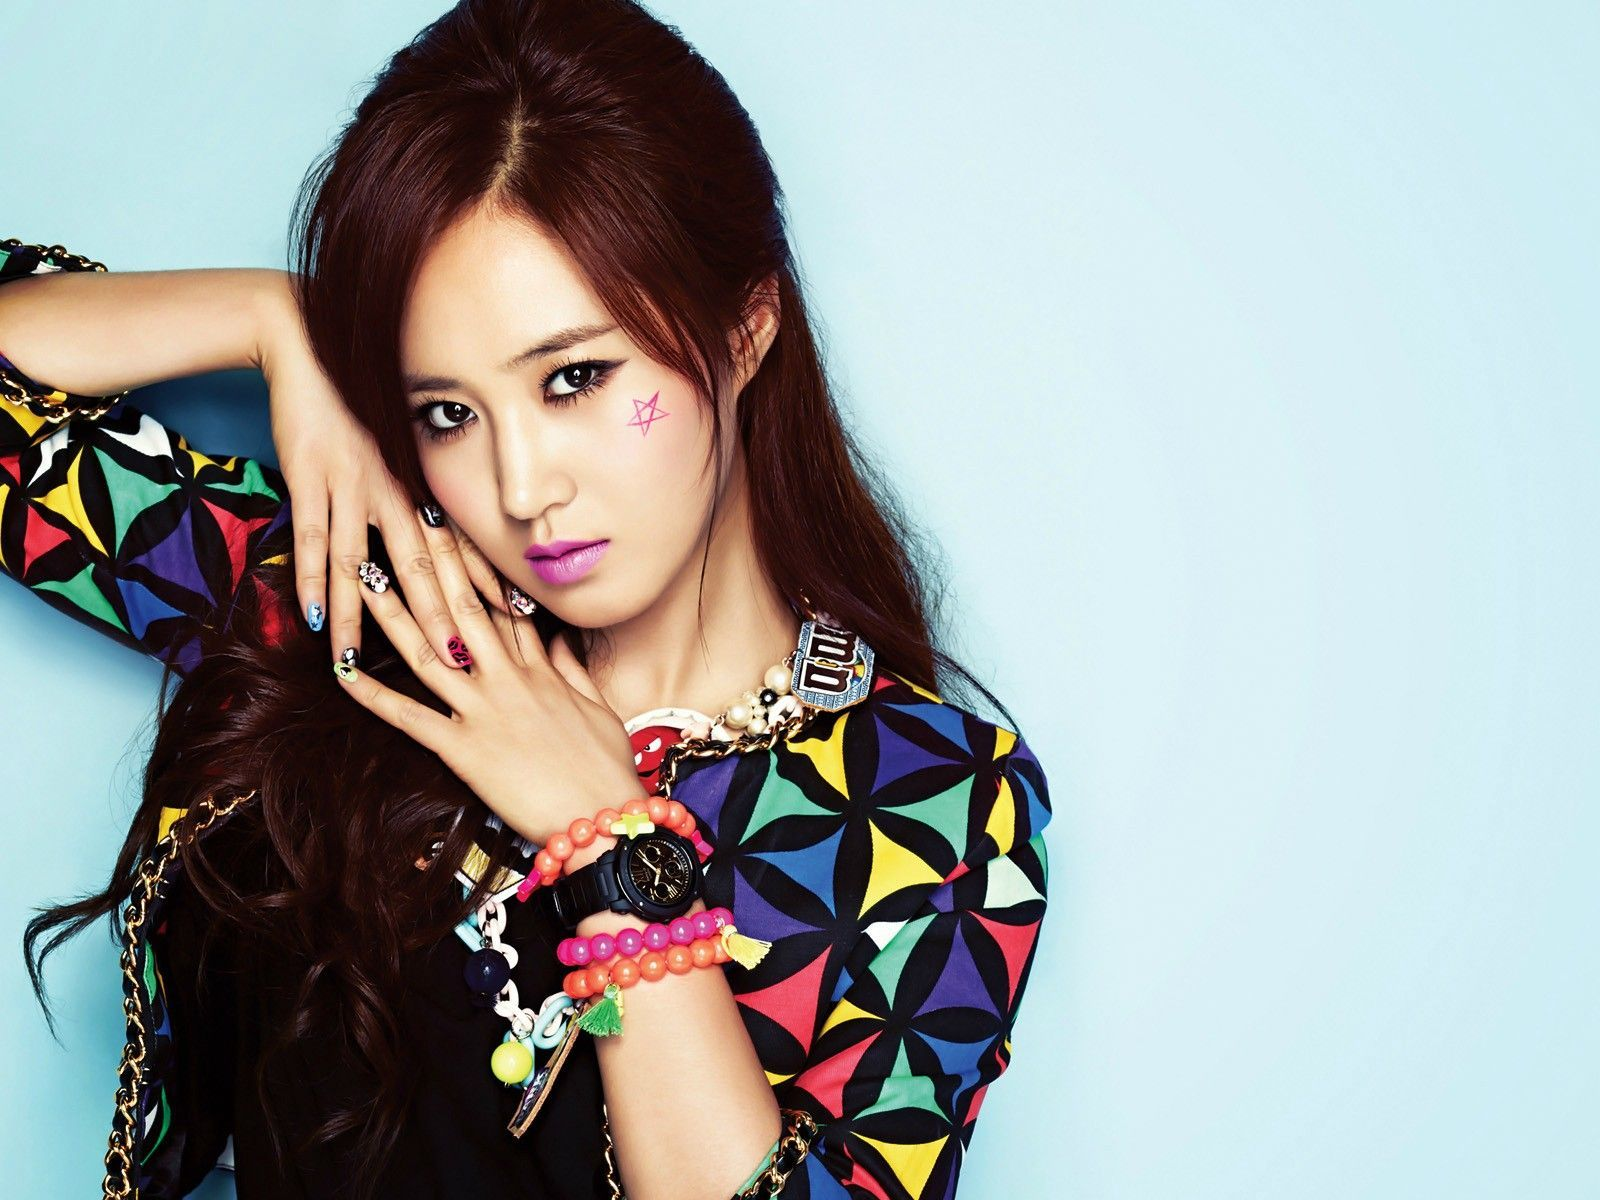 Stay with Me Day and Night&#39-: For Yuri on Her 29th Birthday